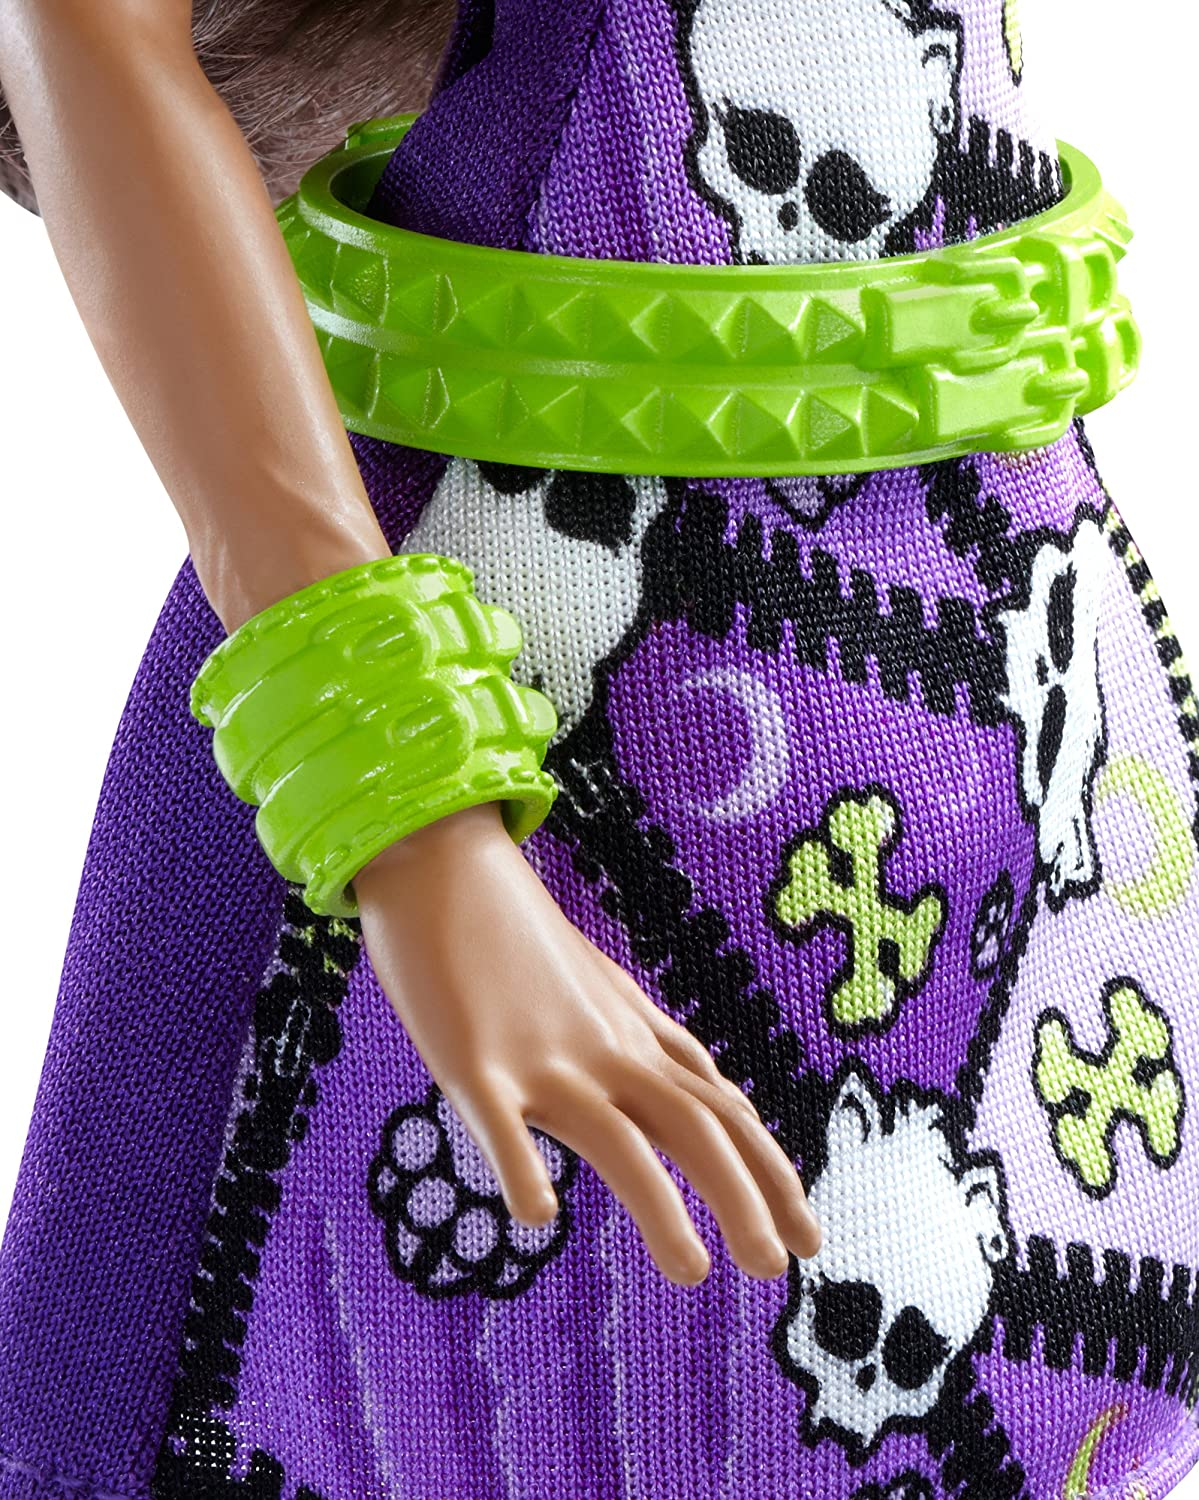 Amazon.com: Monster High Clawdeen Wolf Doll: Toys & Games